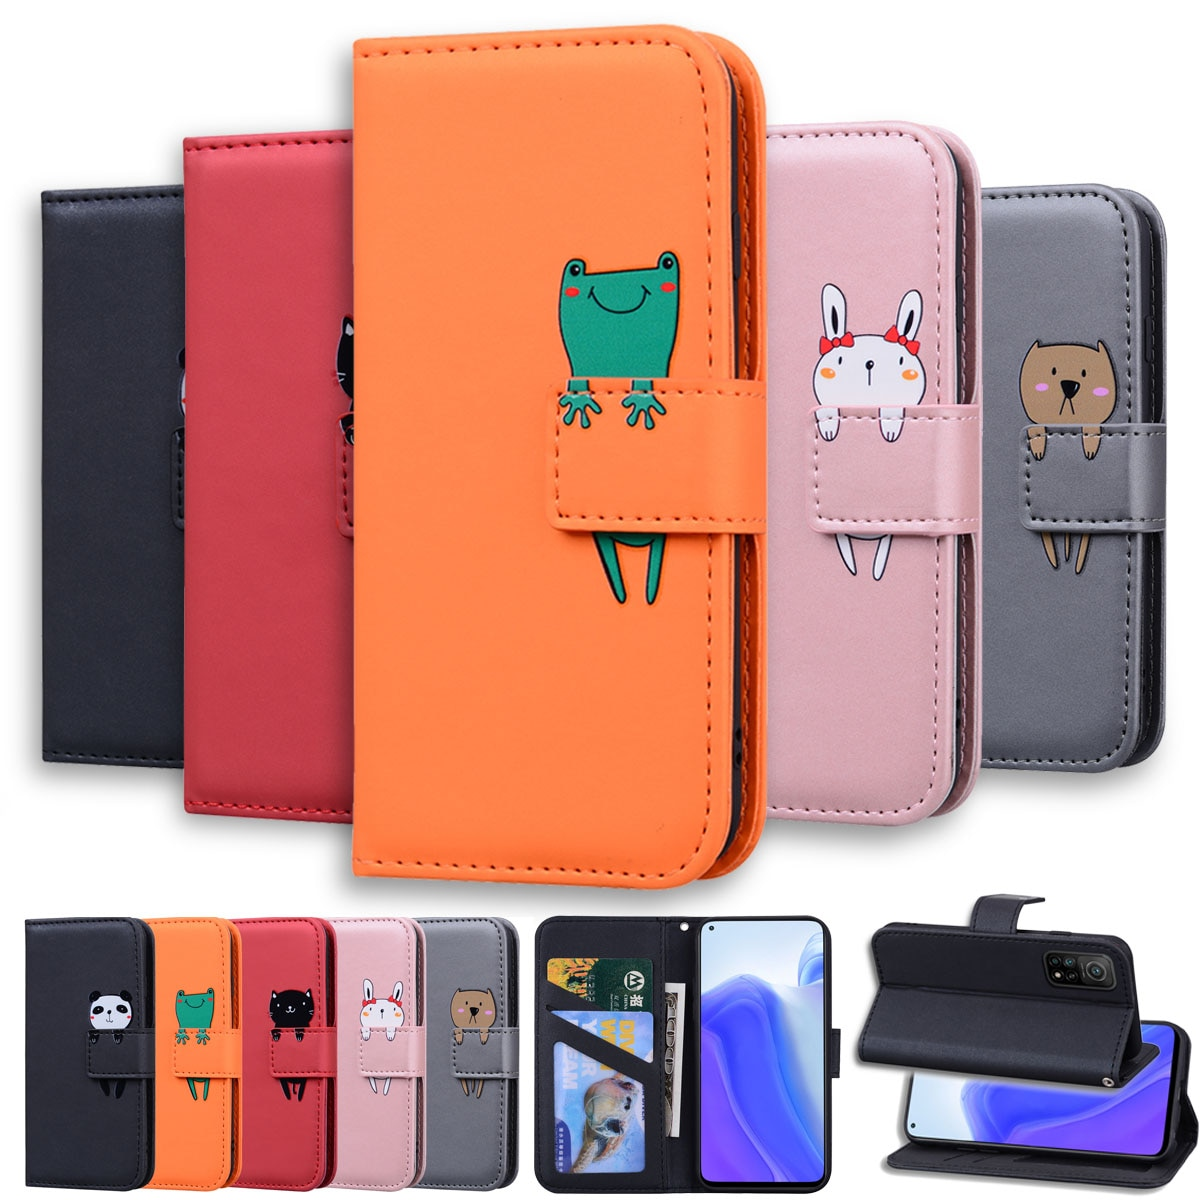 Lovely Animal Flip Leather Phone Case For Xiaomi POCO X3 NFC Redmi Note 9 9S 9A 9C 7 8 8T 7A 8A Mi 1